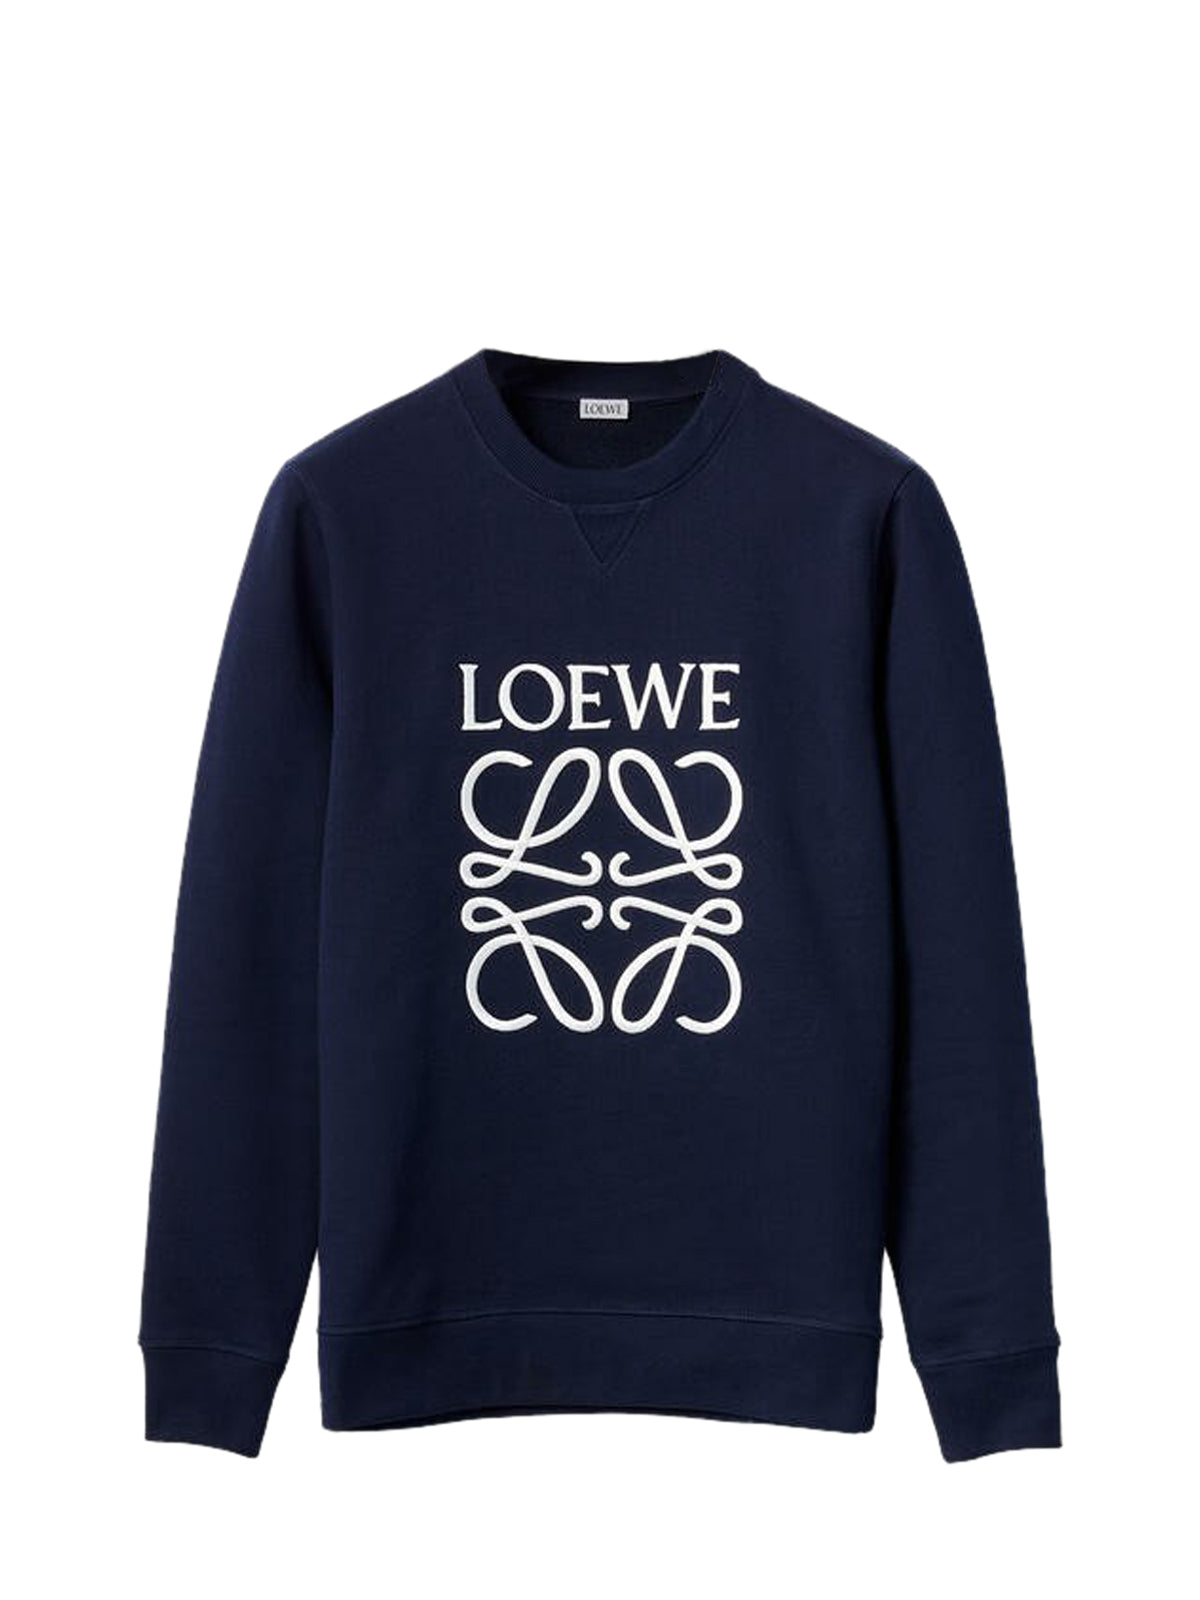 Anagram sweatshirt in cotton